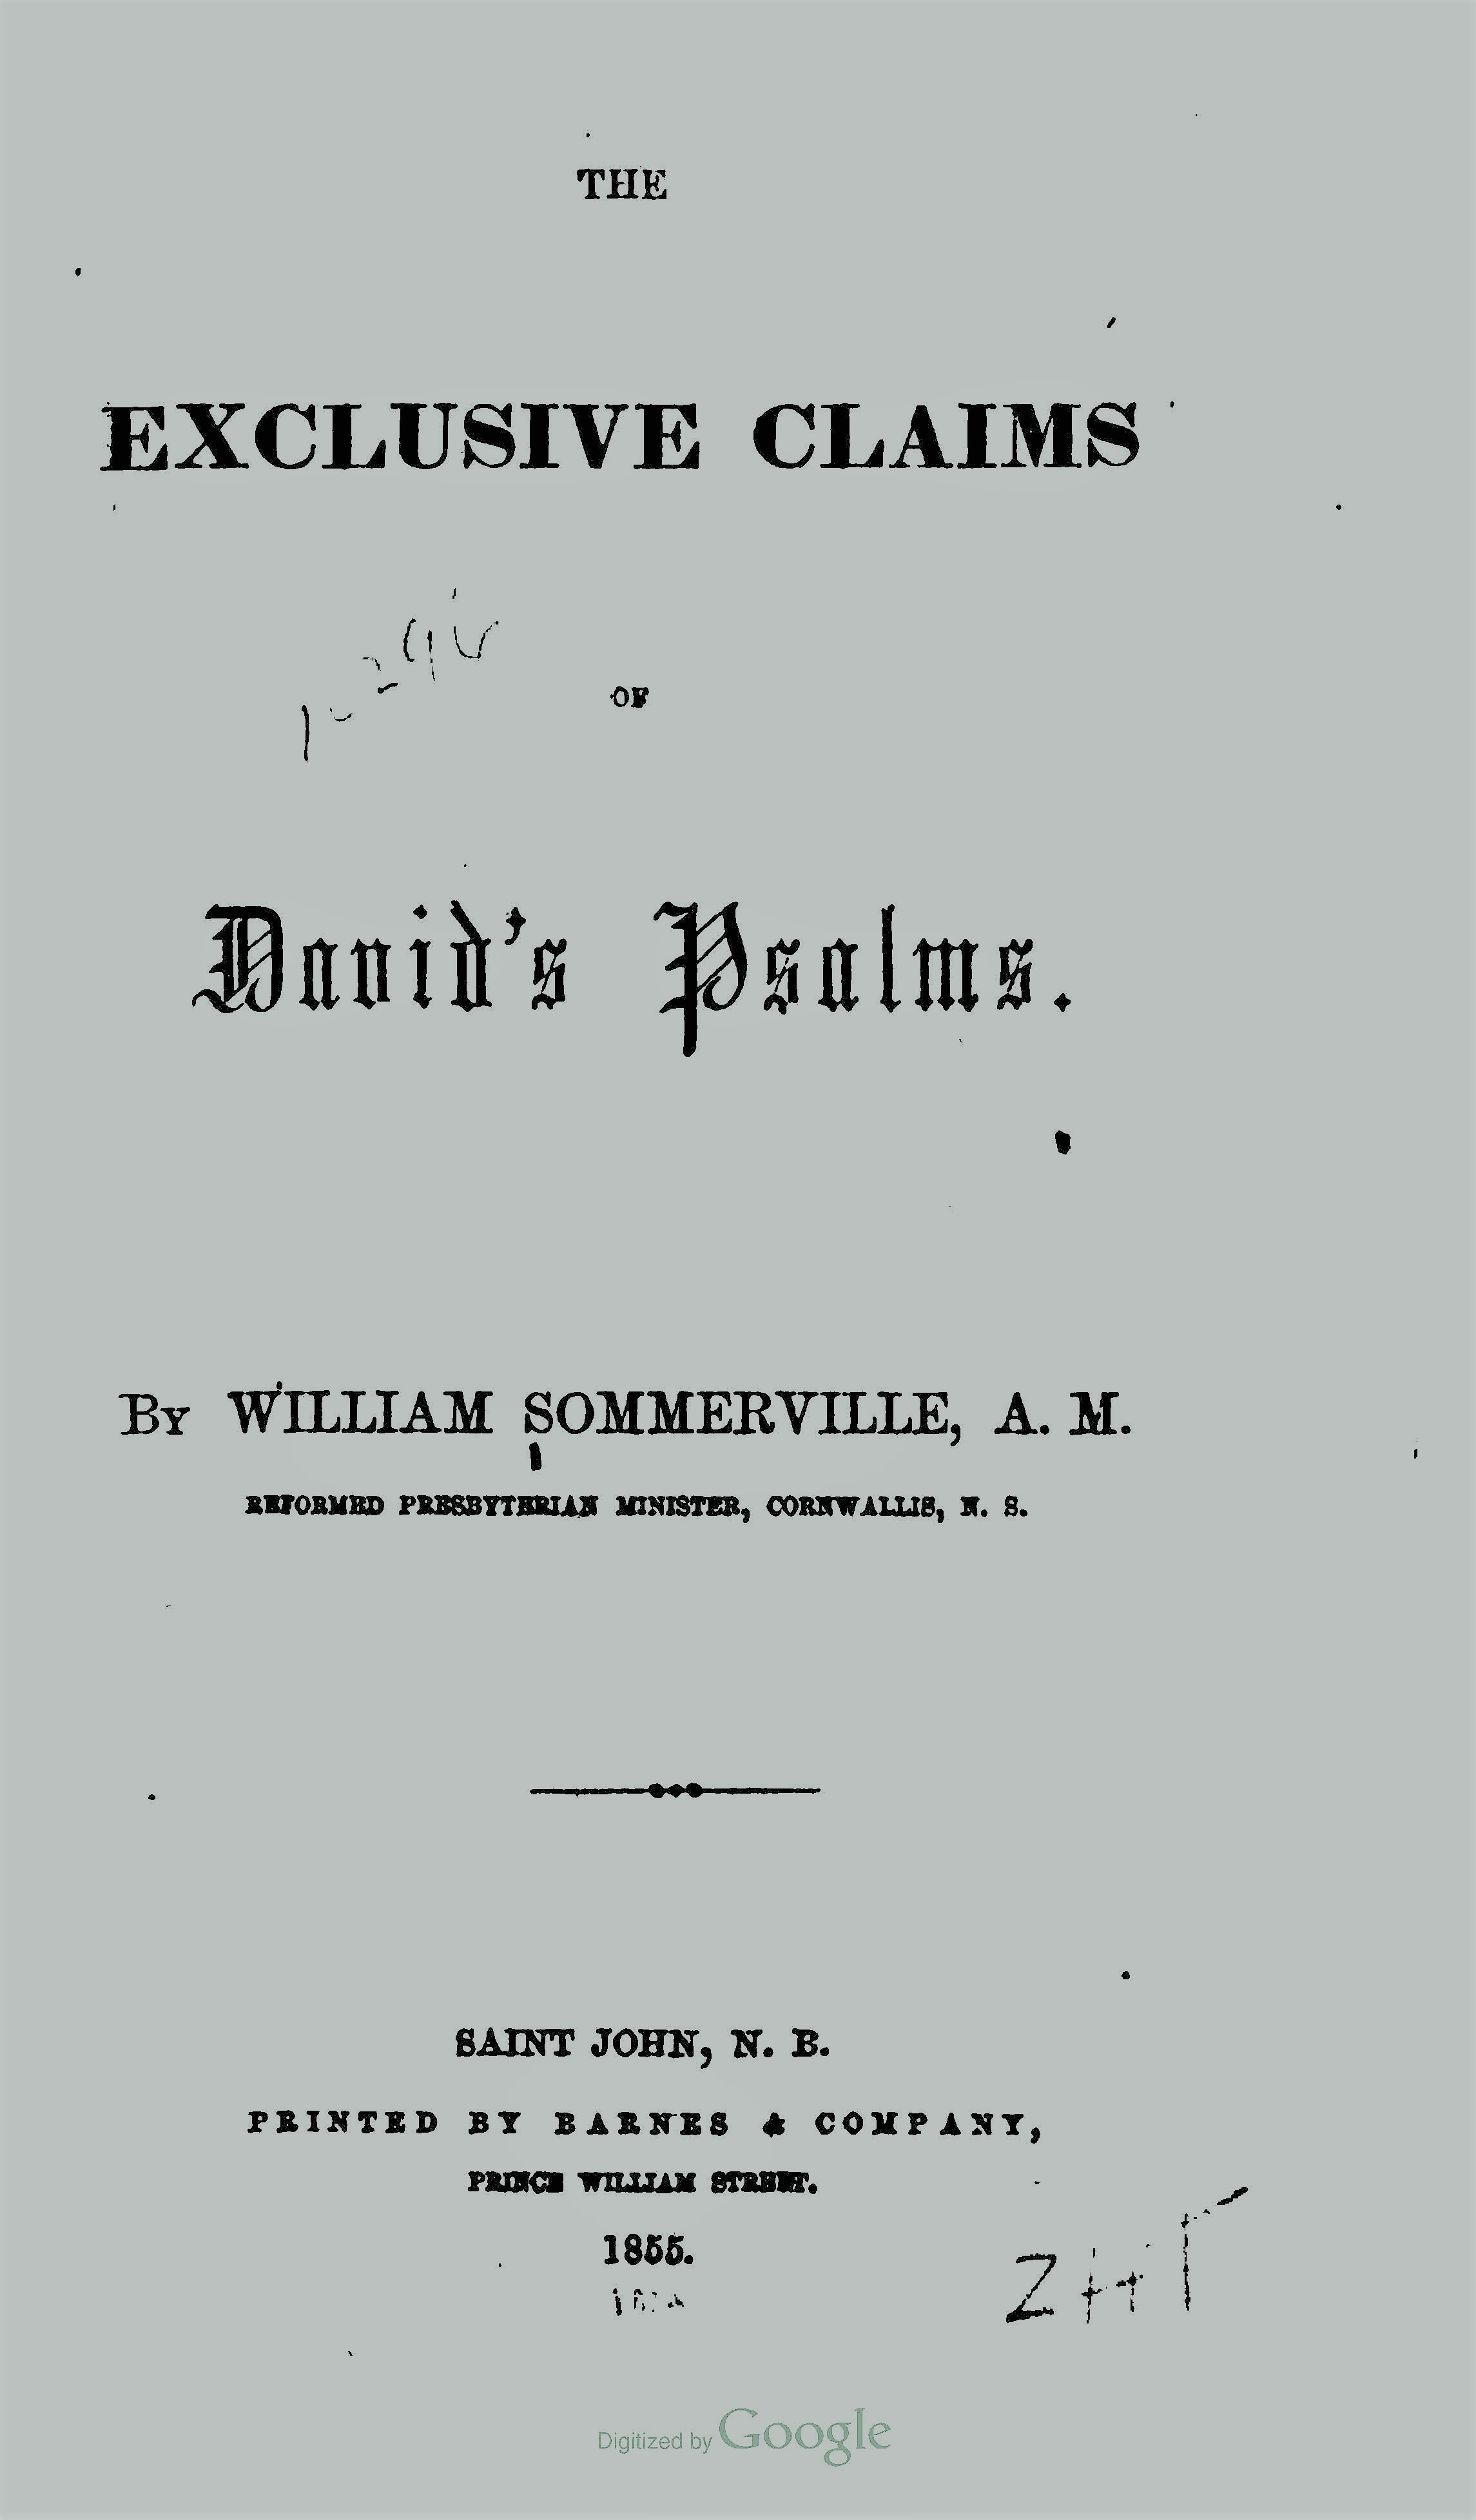 Sommerville, William, The Exclusive Claims of David's Psalms Title Page.jpg